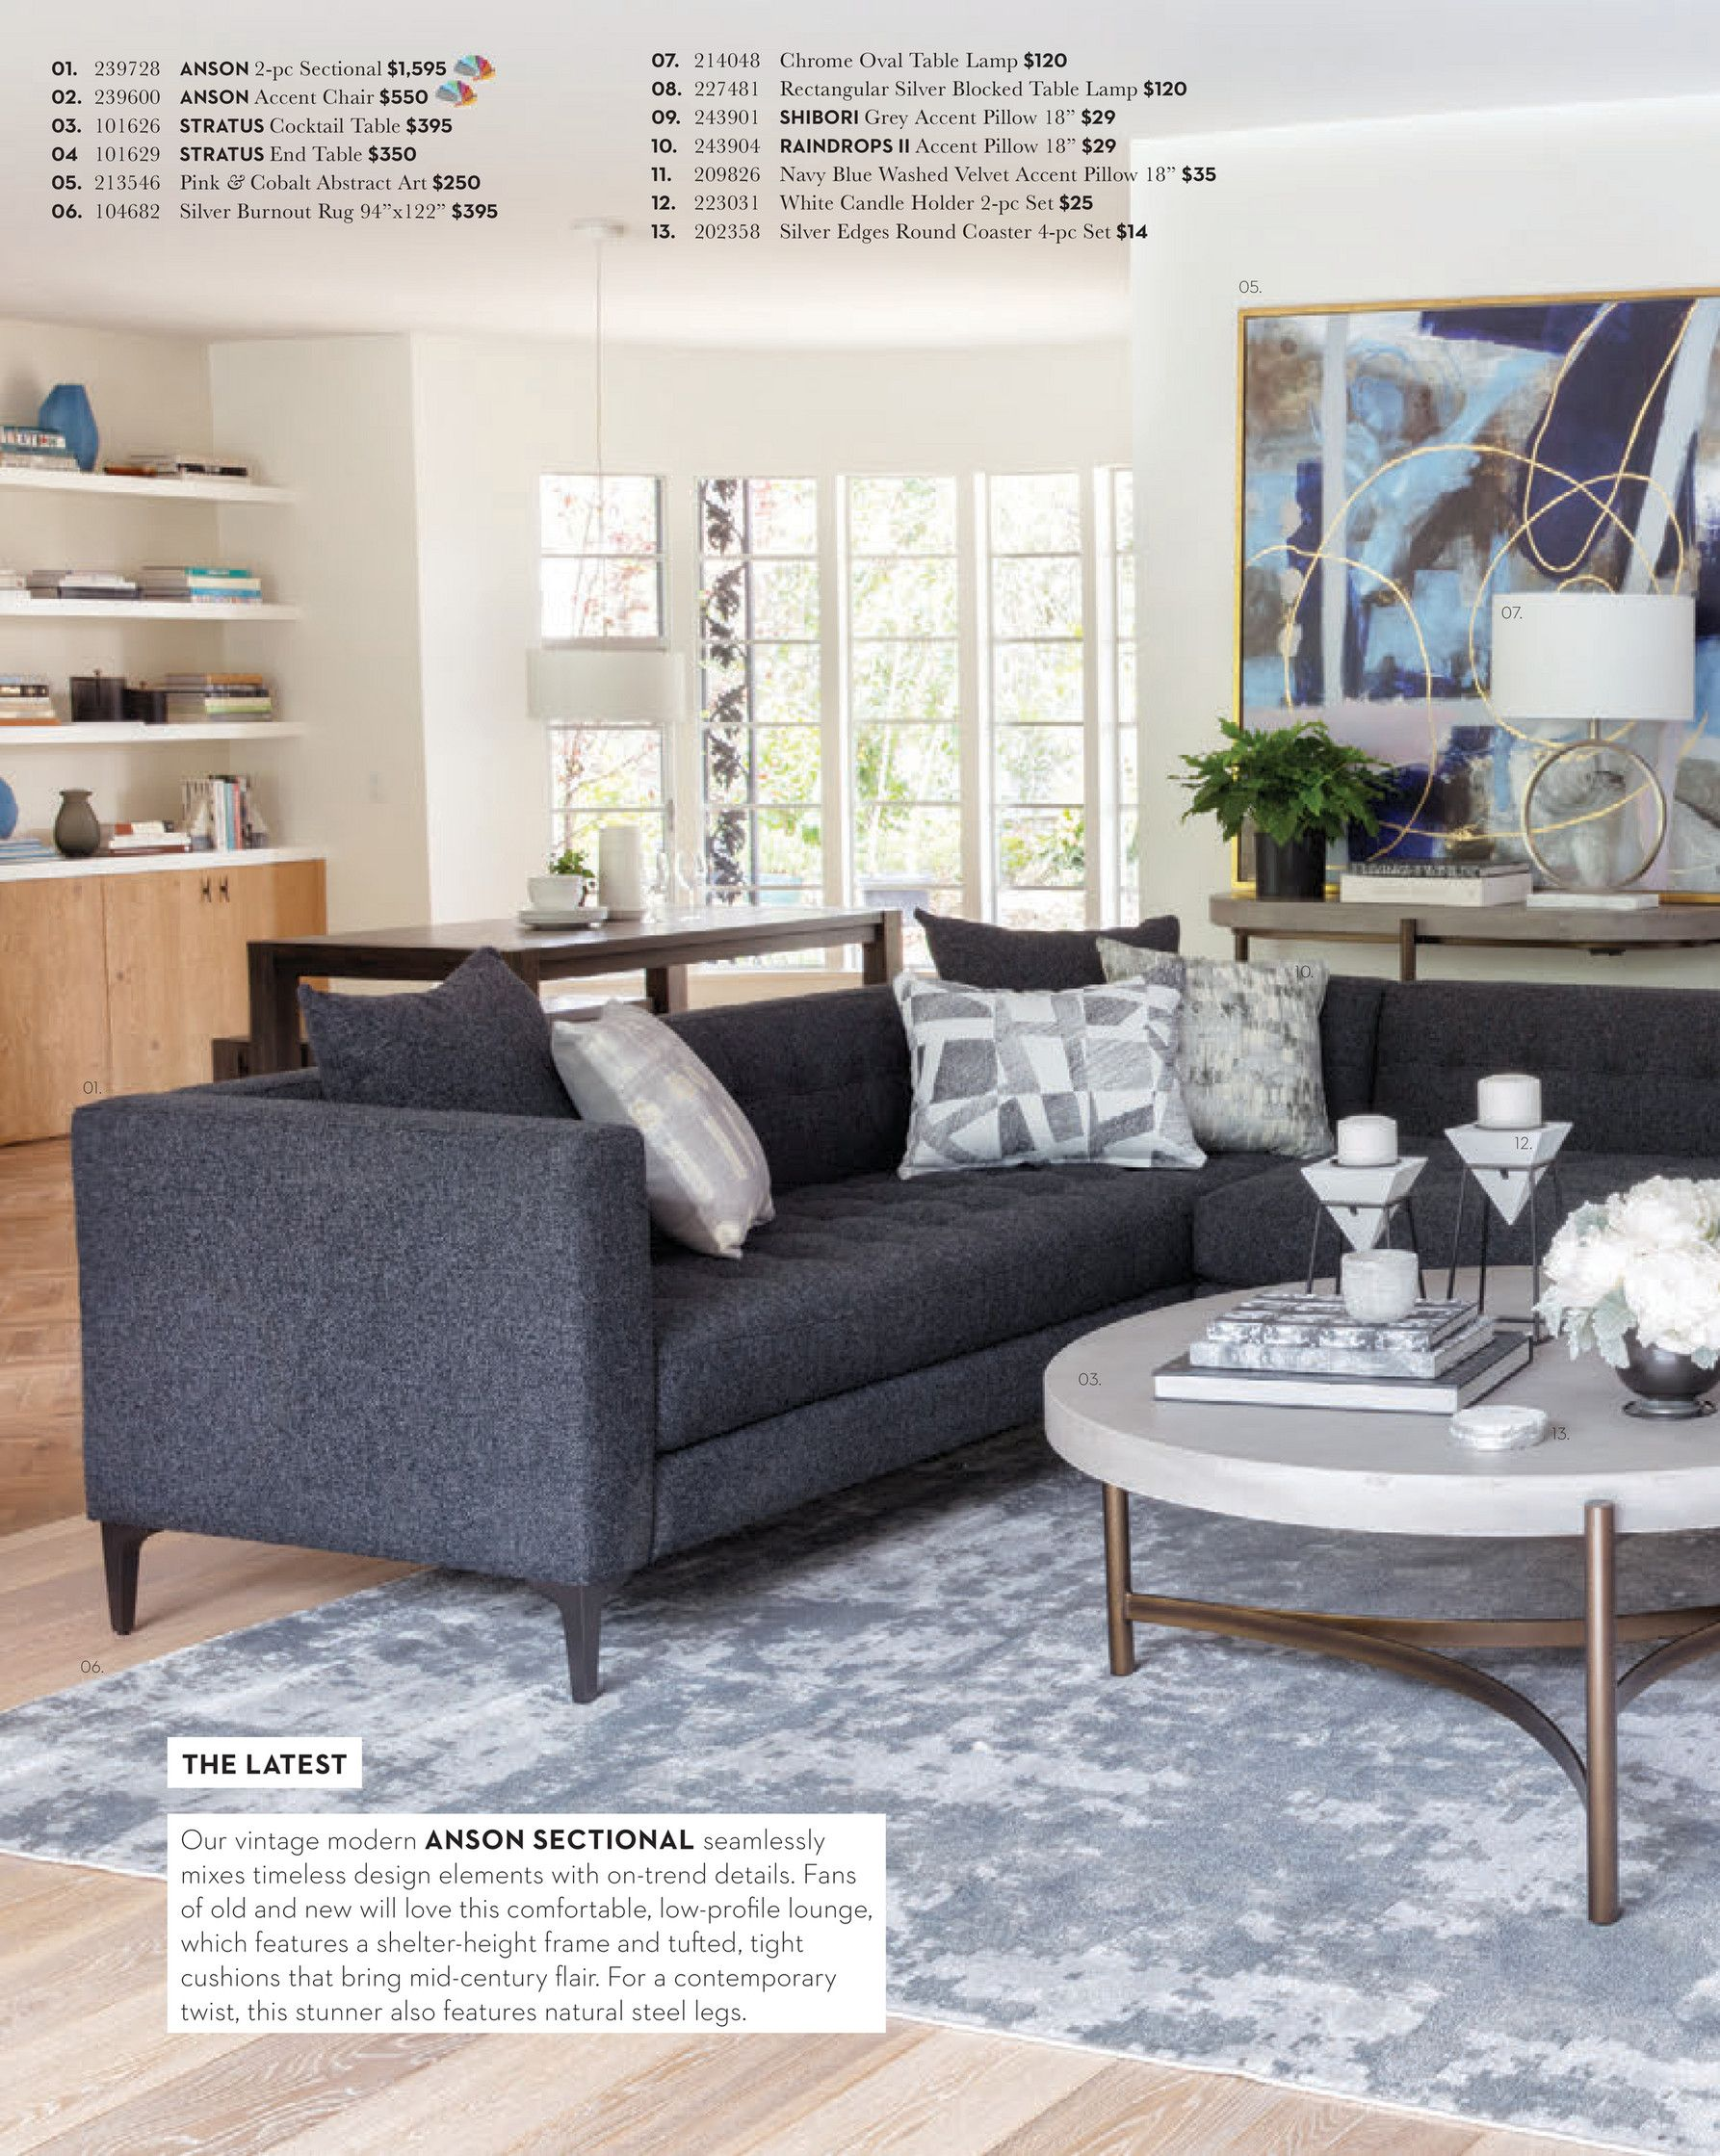 Fa L L 2 0 1 8 Introducing Live Beautifully With An Exclusive Collection By Nate Berkus And Jeremiah Brent Living Spaces Coffee Table Home Decor